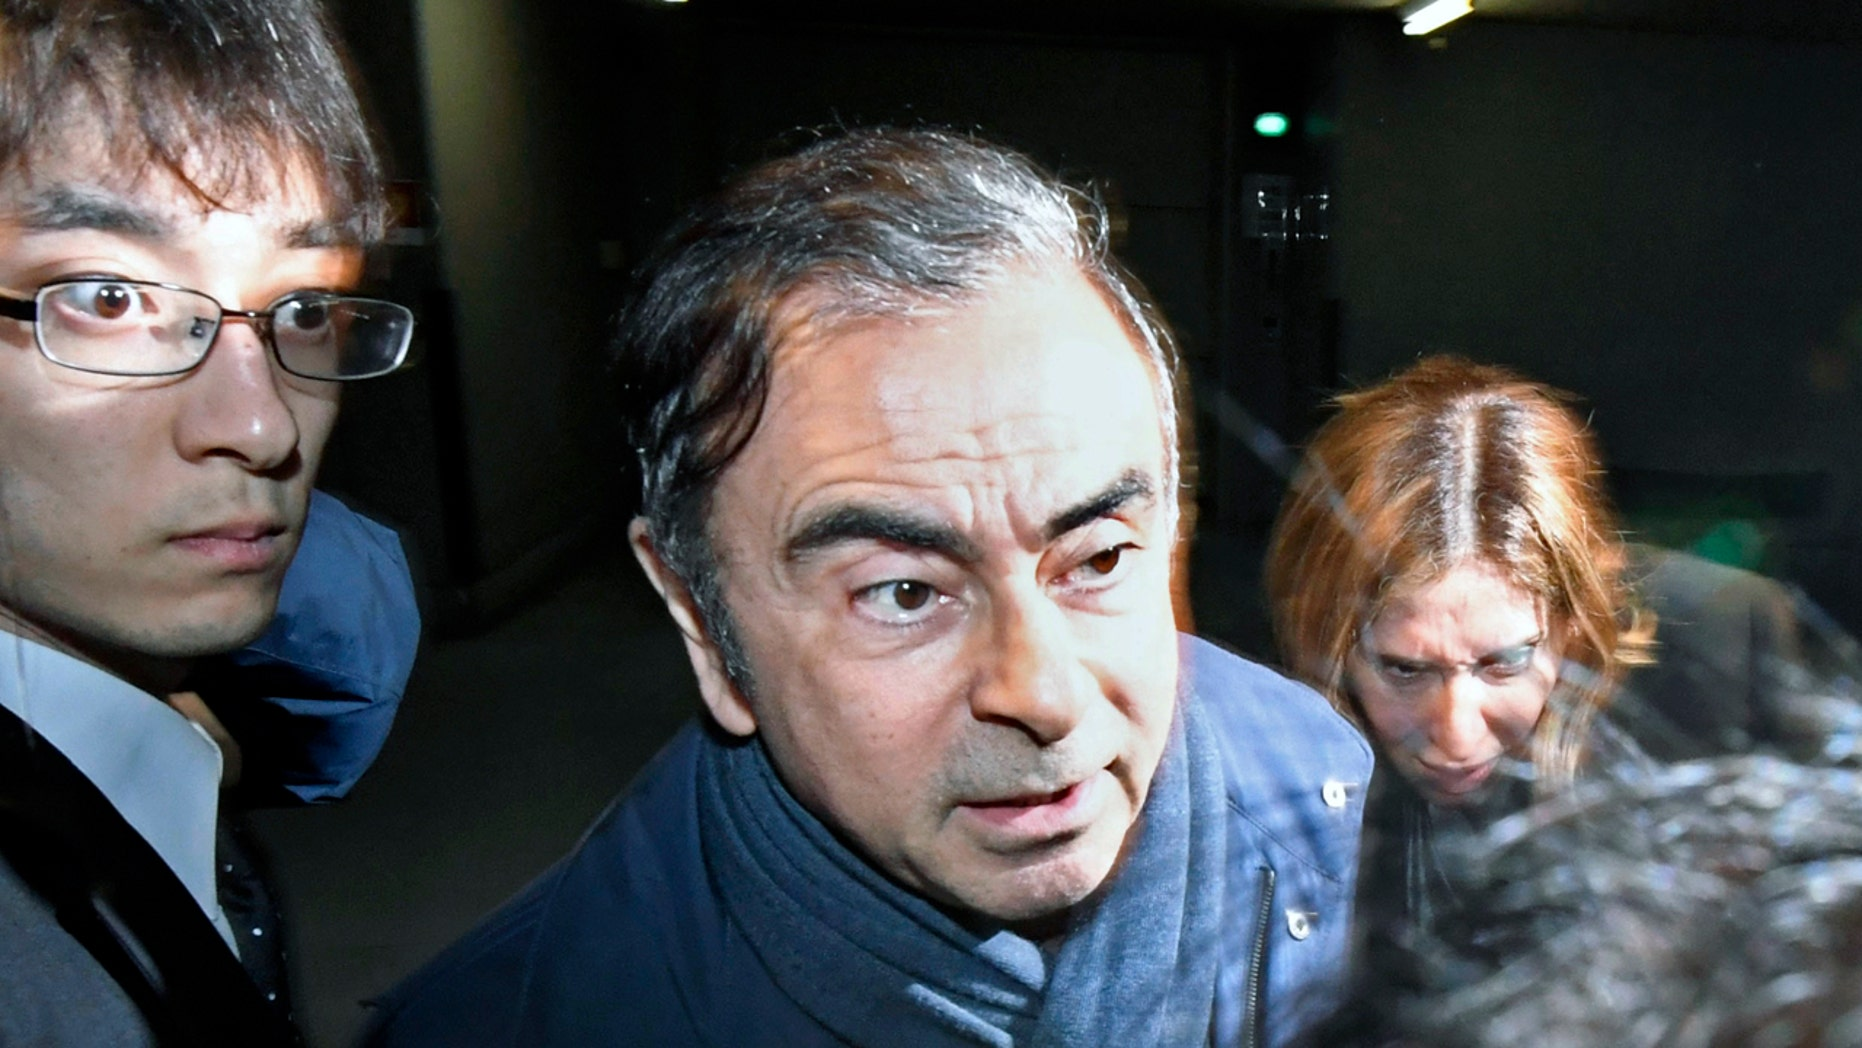 Former Nissan Chairman Carlos Ghosn, center, leaves his lawyer's office in Tokyo Wednesday. (Sadayuki Goto/Kyodo News via AP, File)